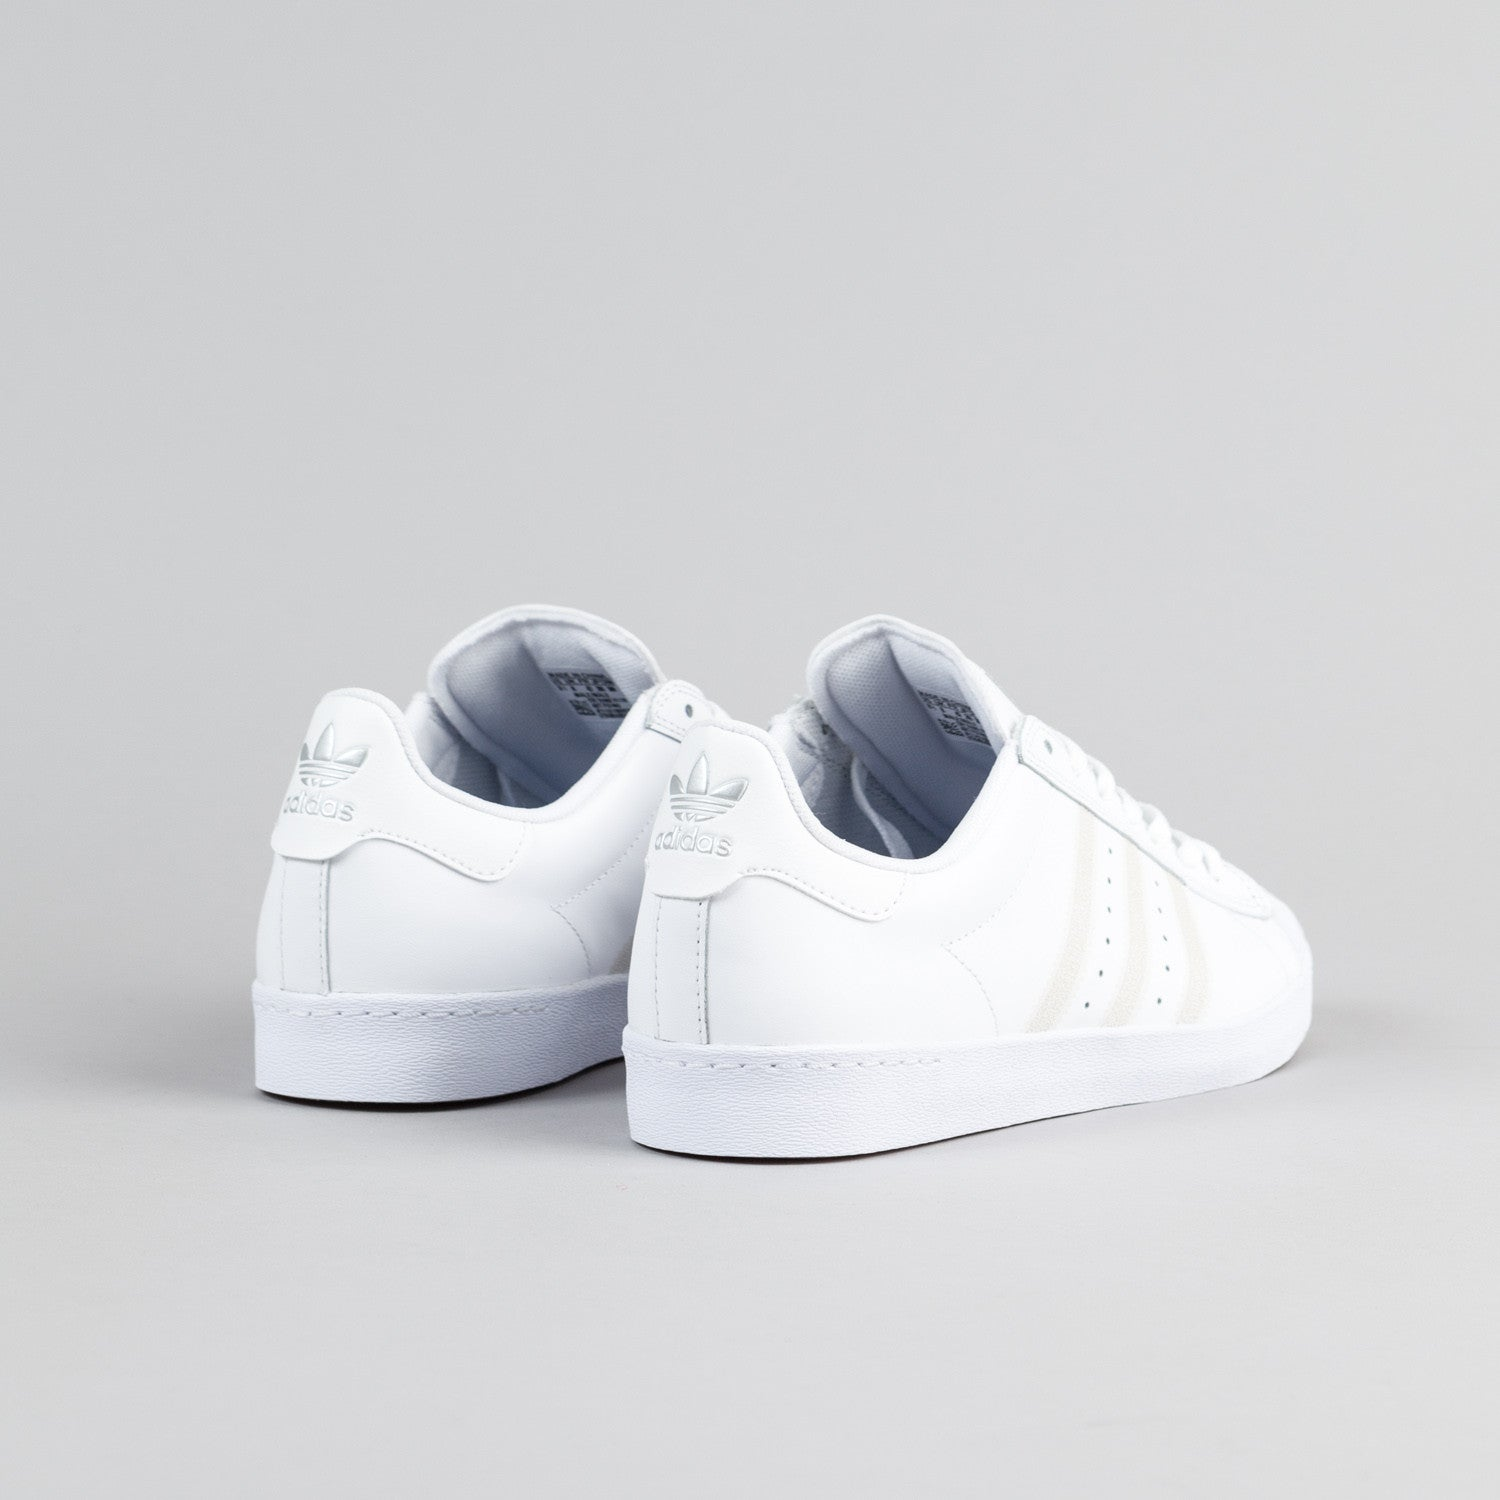 superstar vulc alumi2/black1/wht Flight Club